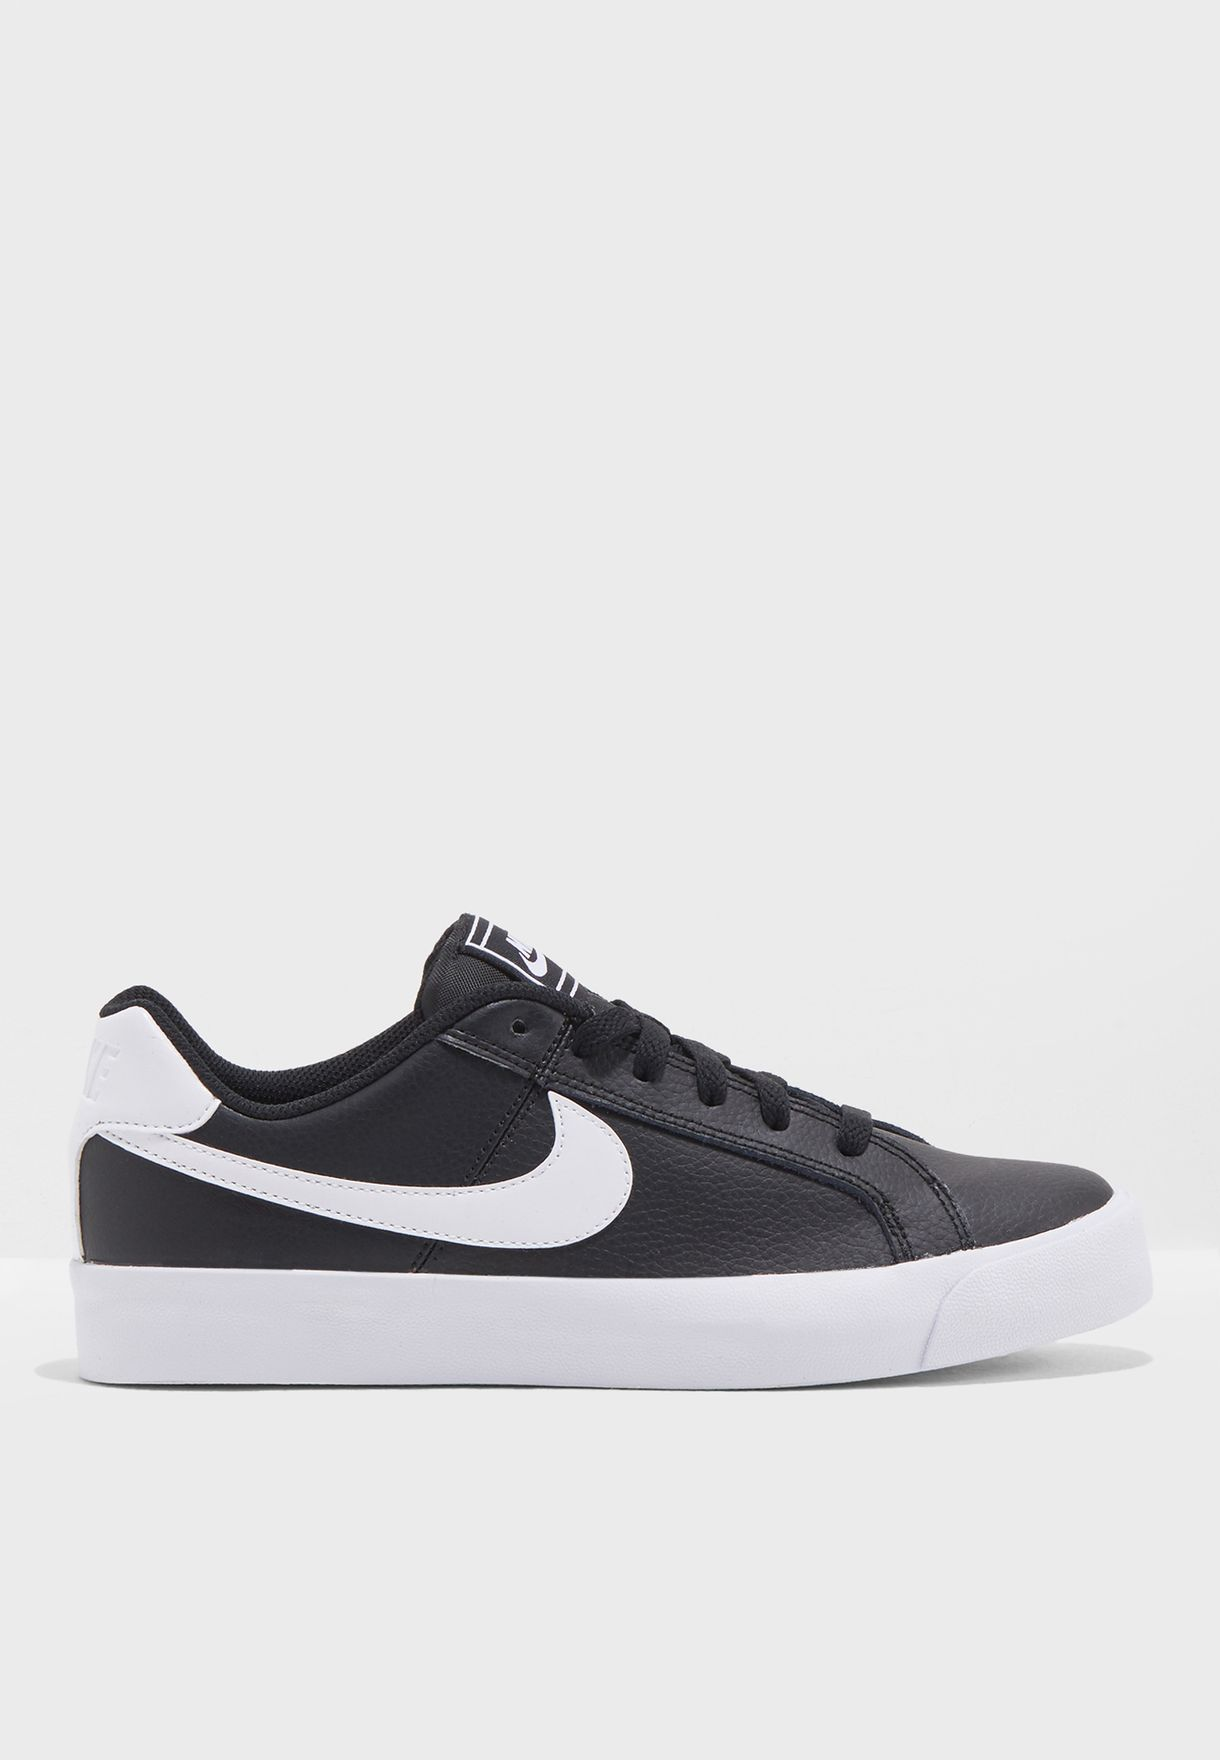 736eae14531f7 Shop Nike black Court Royale AC AO2810-001 for Women in Saudi ...